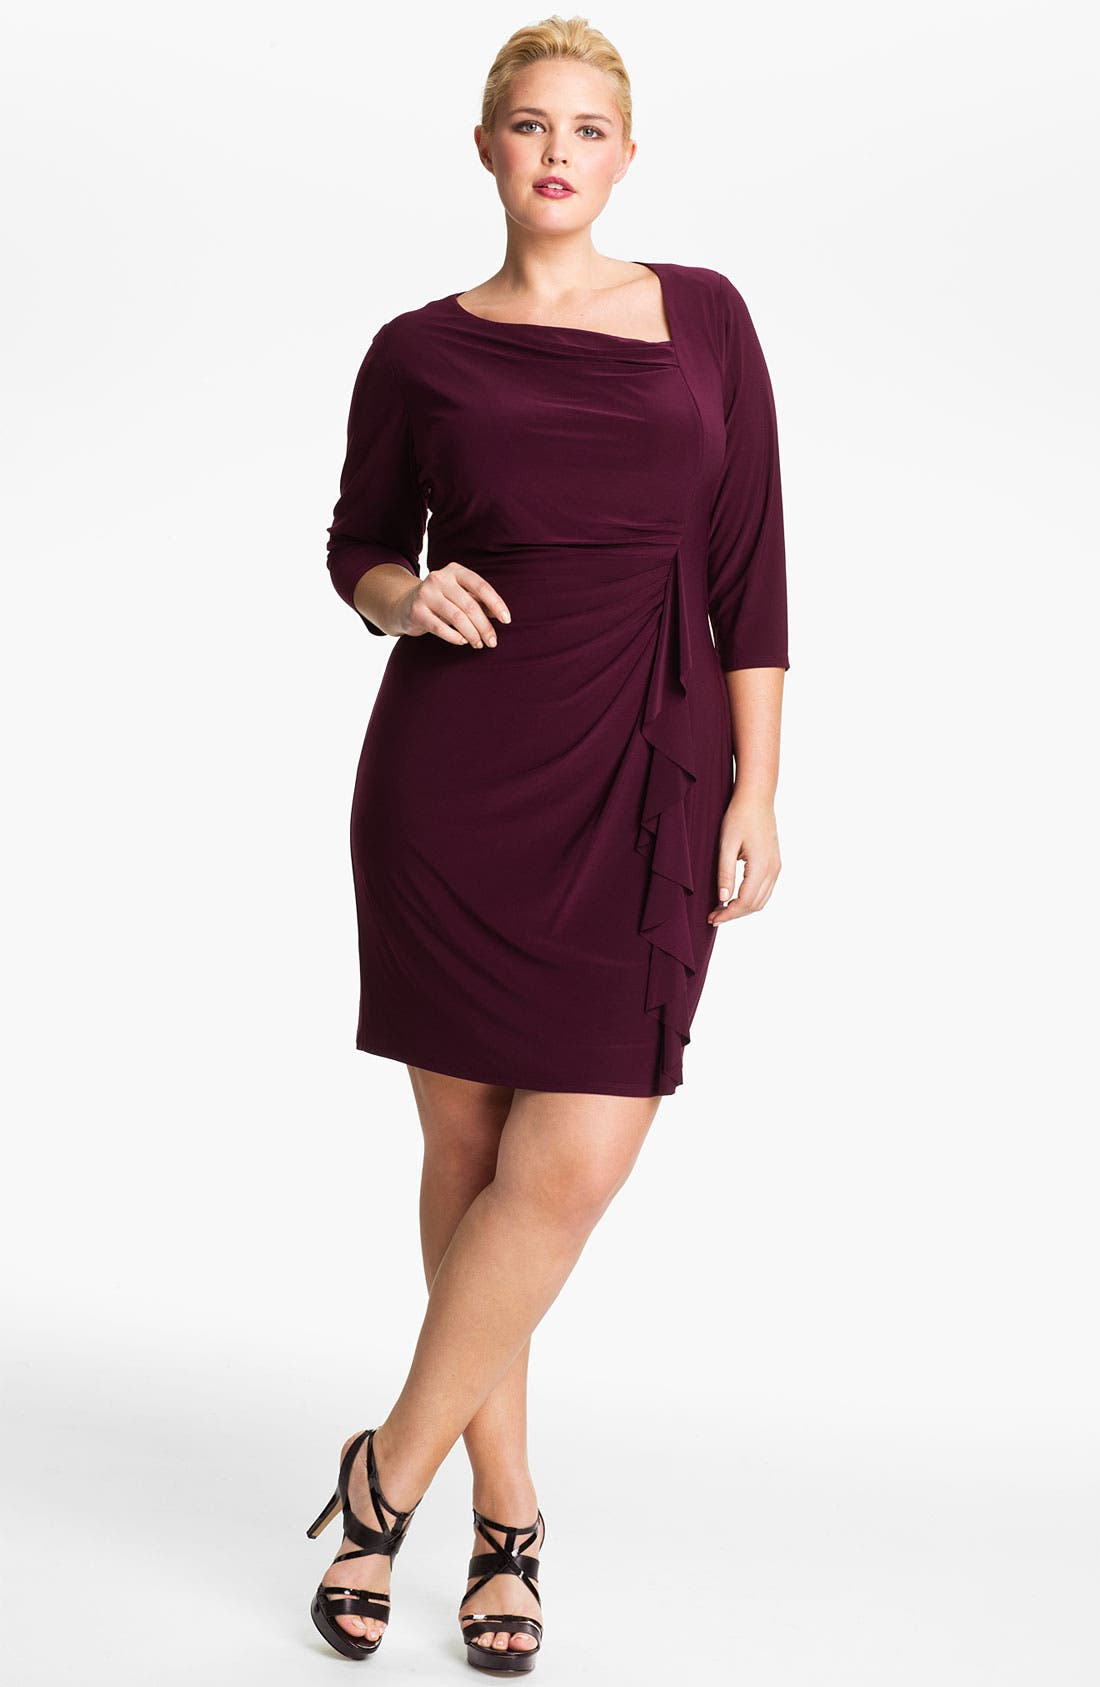 Alternate Image 1 Selected - Eliza J Asymmetrical Knit Dress (Plus)